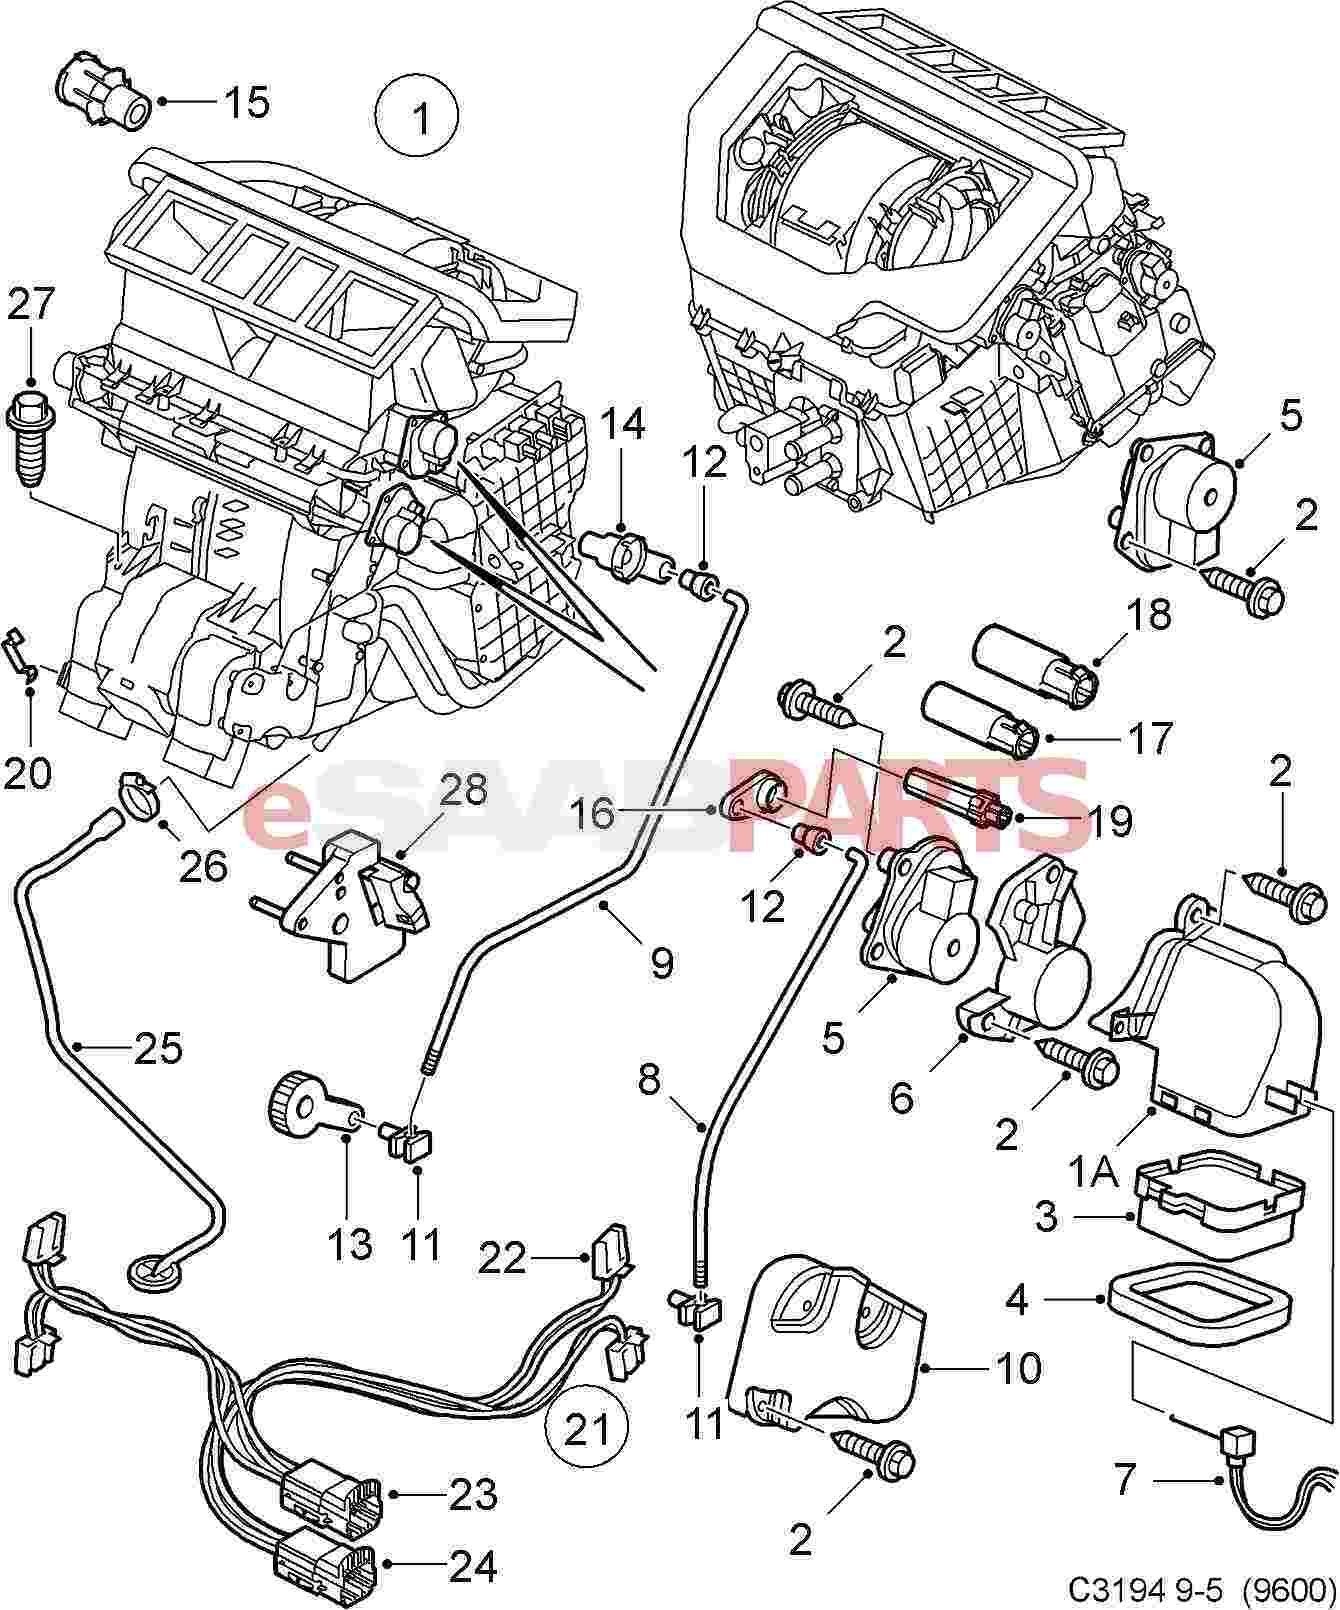 [WRG-7045] Saab 9000 Air Conditioning Wiring Diagram